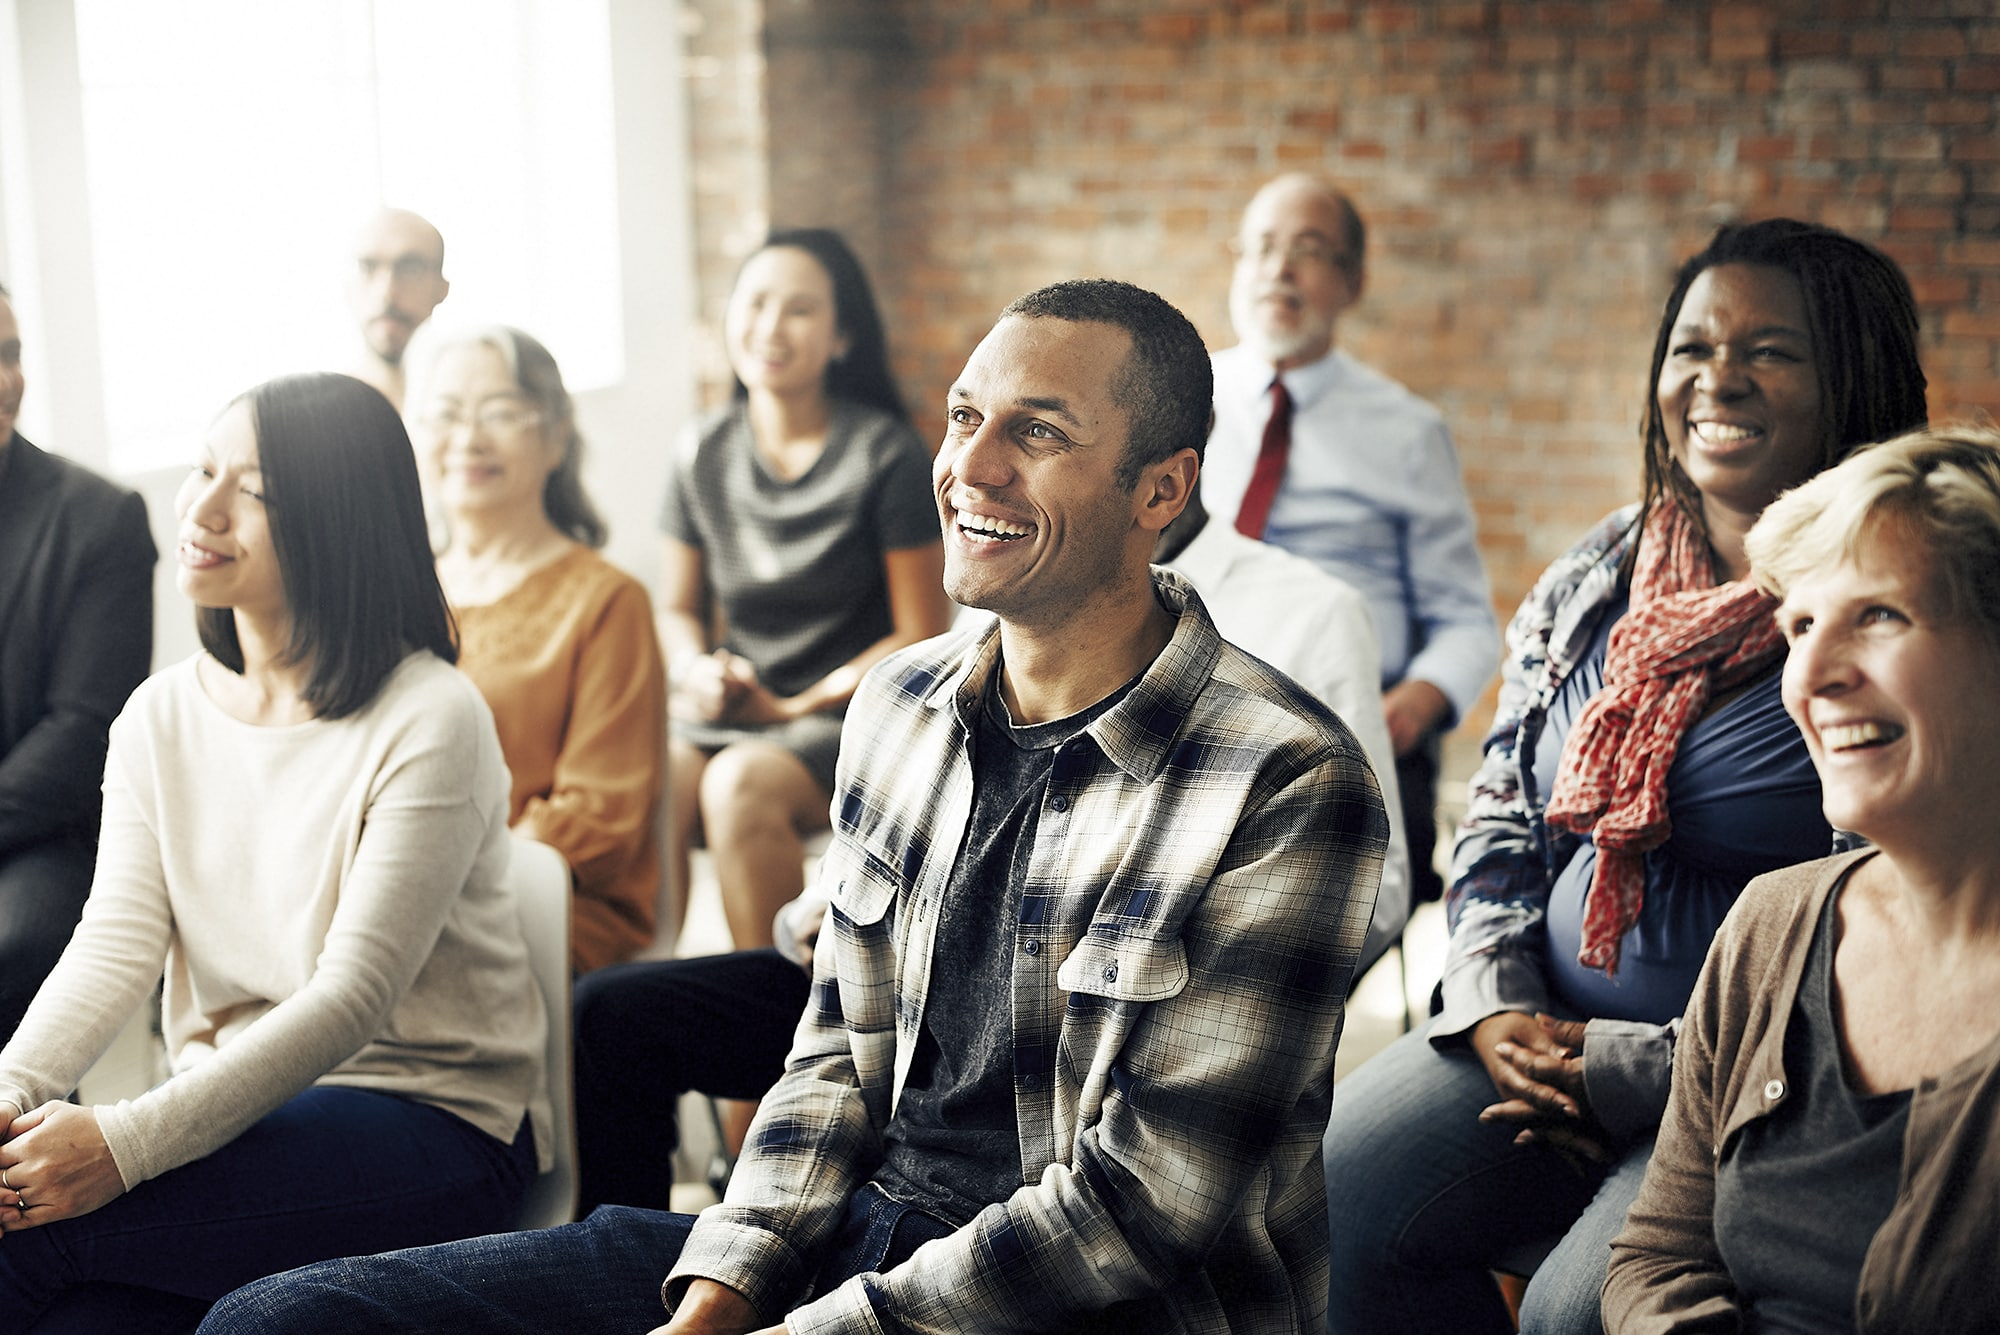 Employees engage more with their development centered leader